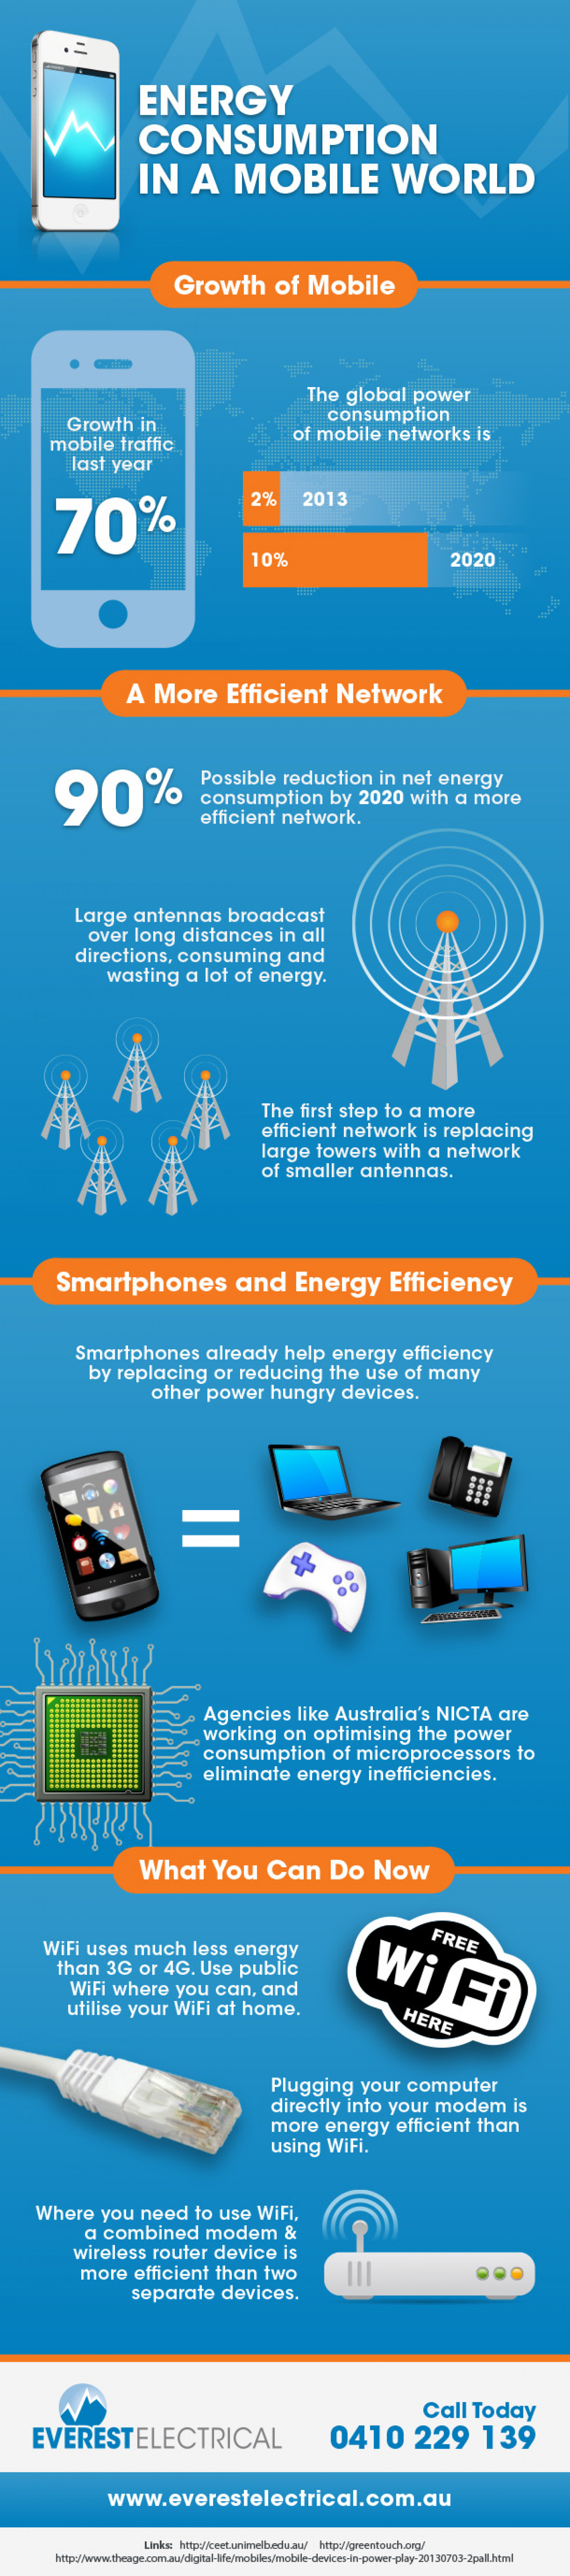 Energy Consumption in a Mobile World Infographic